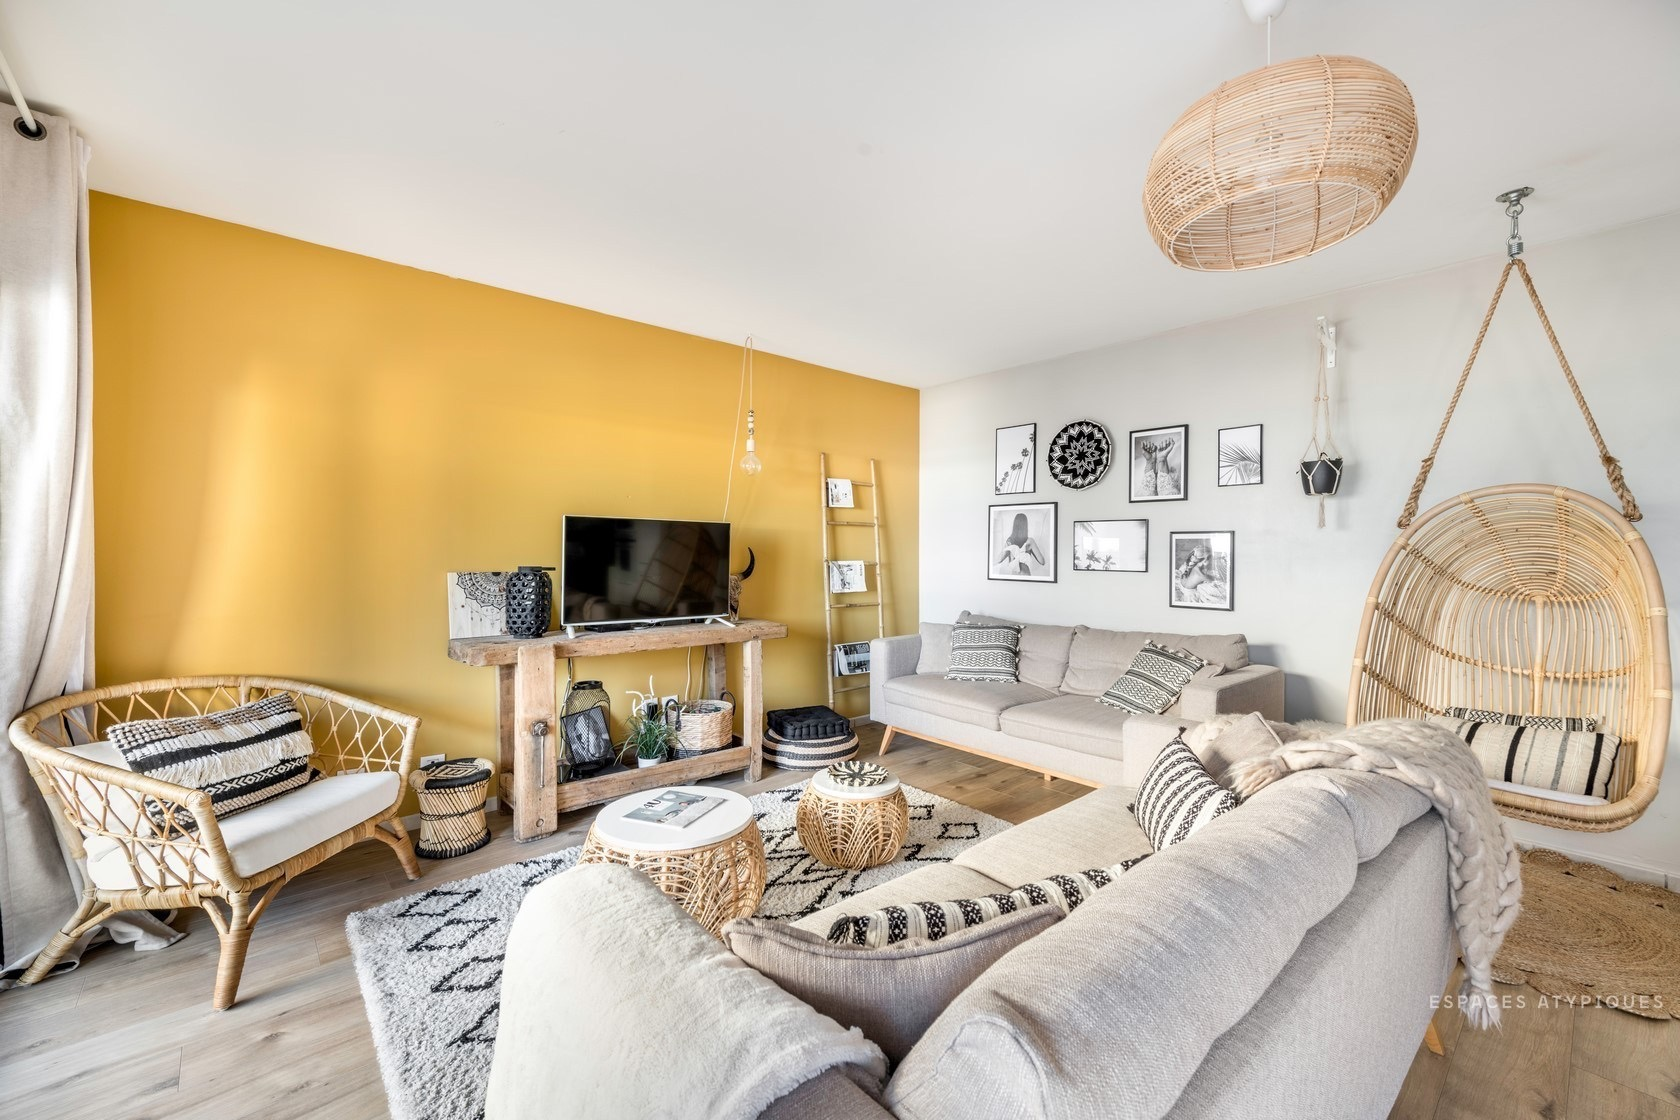 INTERIOR TRENDS 2020 | Top 2019 Decor Trends according to ...